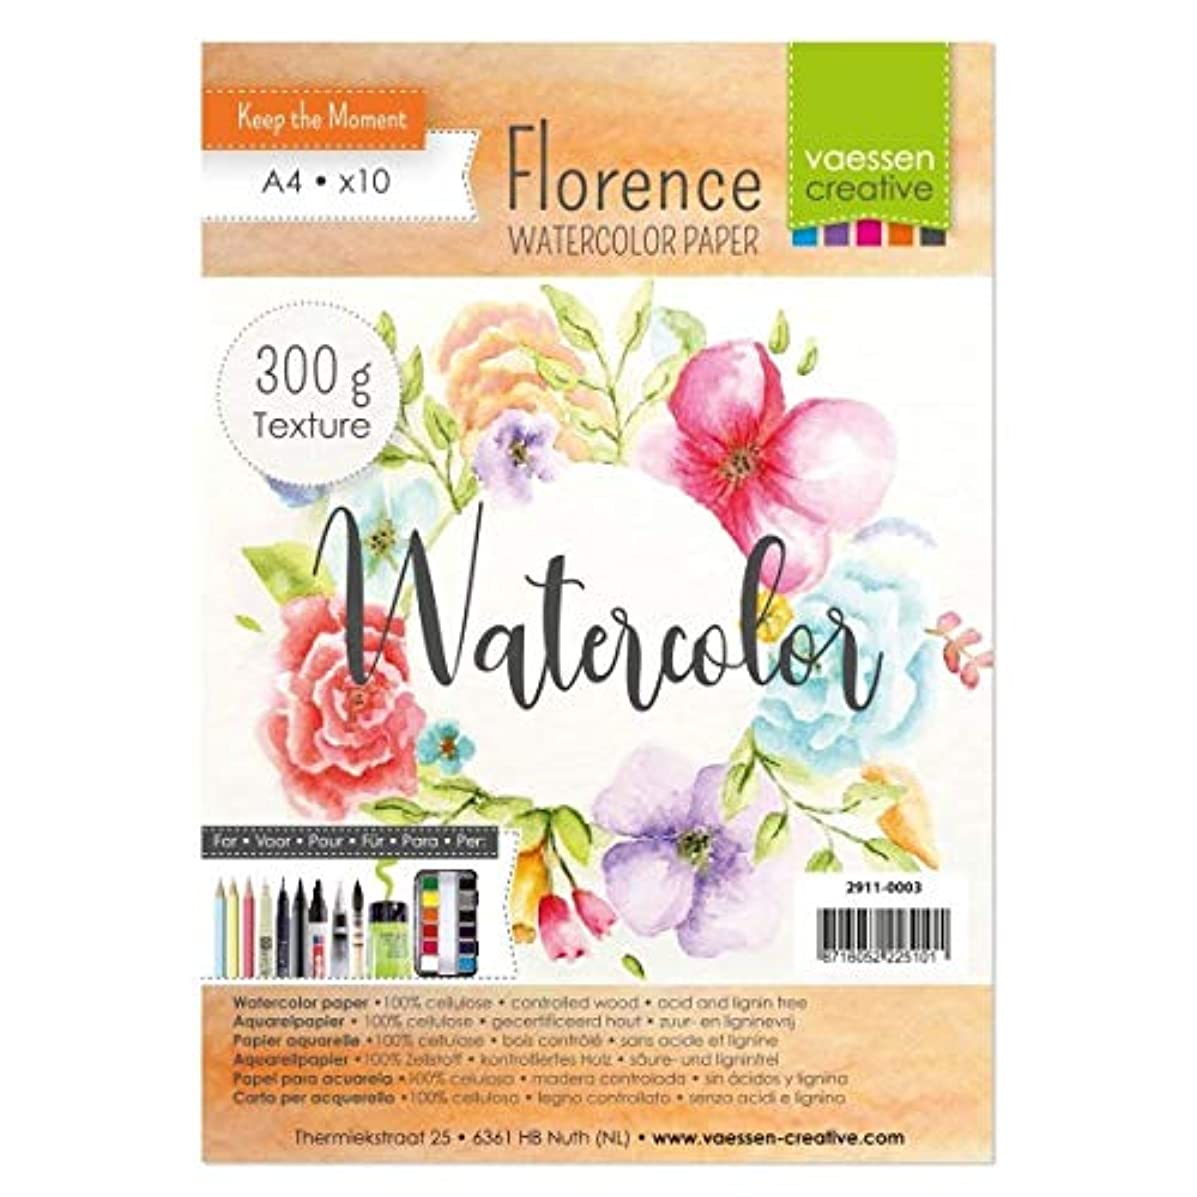 Vaessen Creative Florence Watercolour Paper A4, Ivory, 300 GSM, Artist Grade Quality, Textured Surface, 10 Sheets for Painting, Handlettering, Art Projects